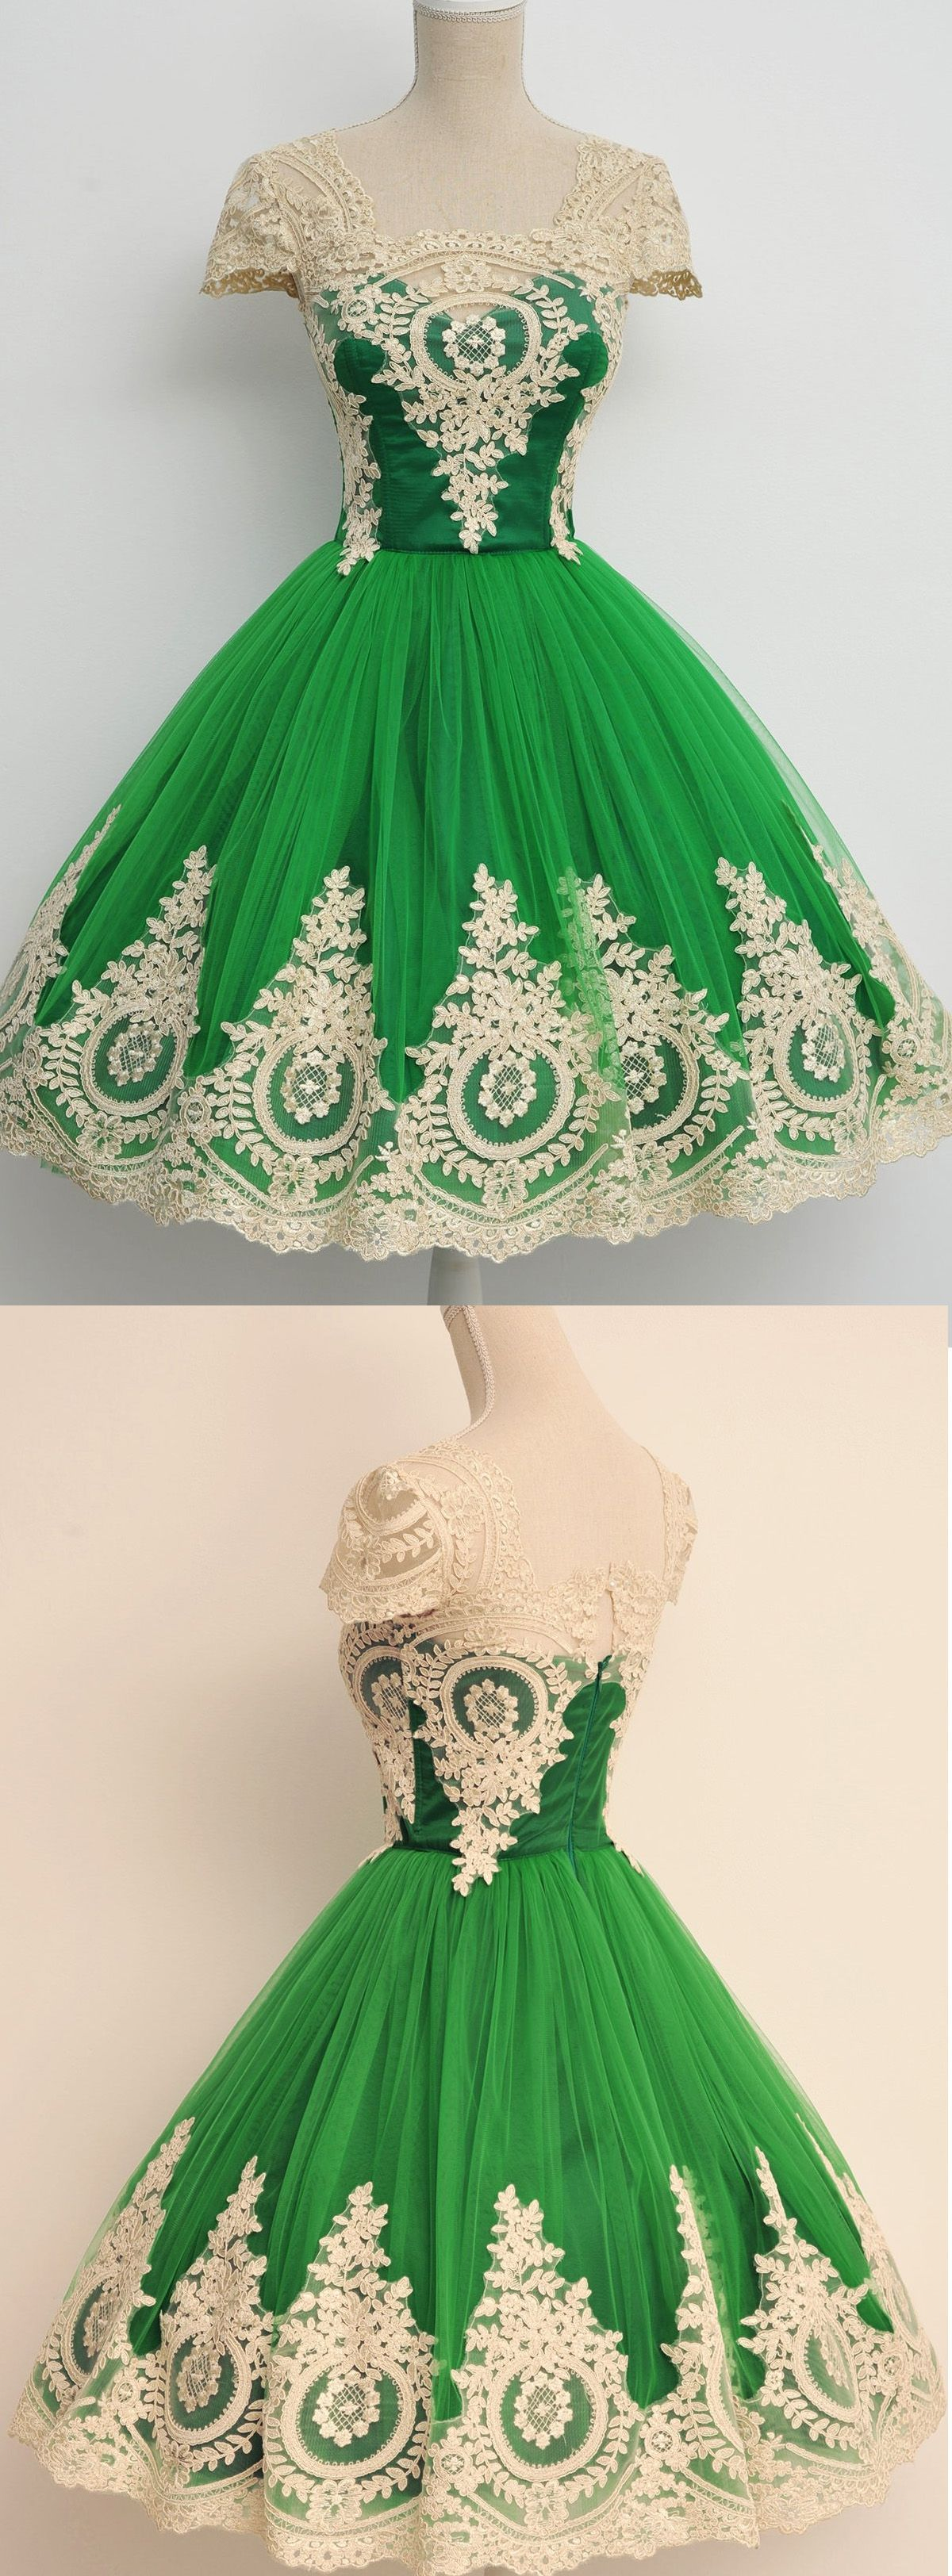 Gown homecoming dresses green ball gown homecoming dresses gown